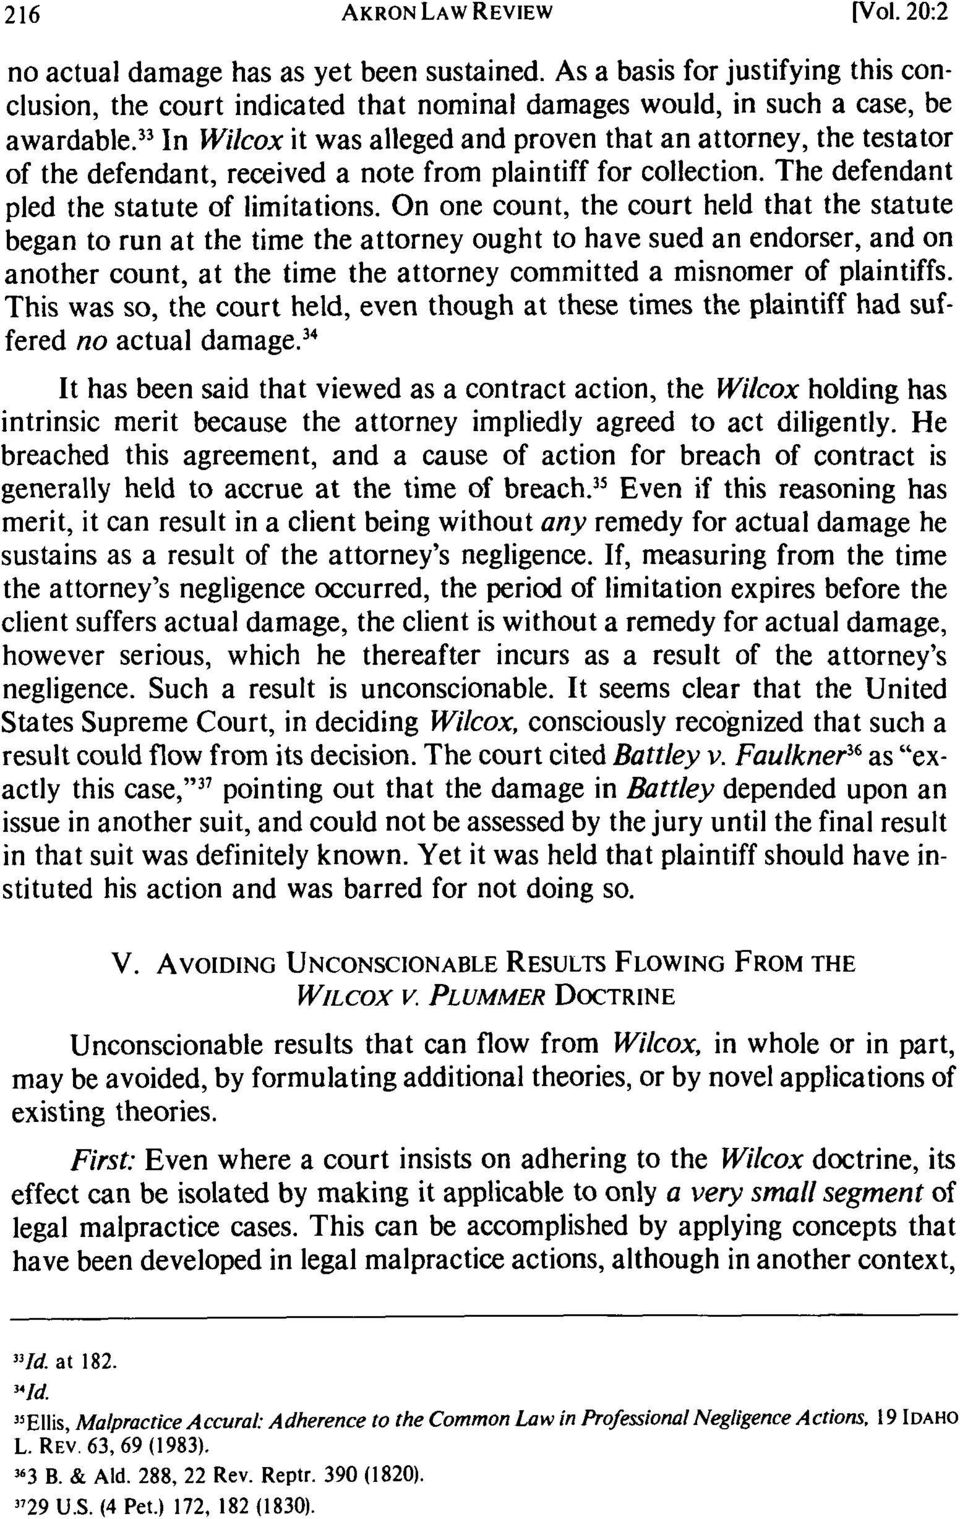 On one count, the court held that the statute began to run at the time the attorney ought to have sued an endorser, and on another count, at the time the attorney committed a misnomer of plaintiffs.